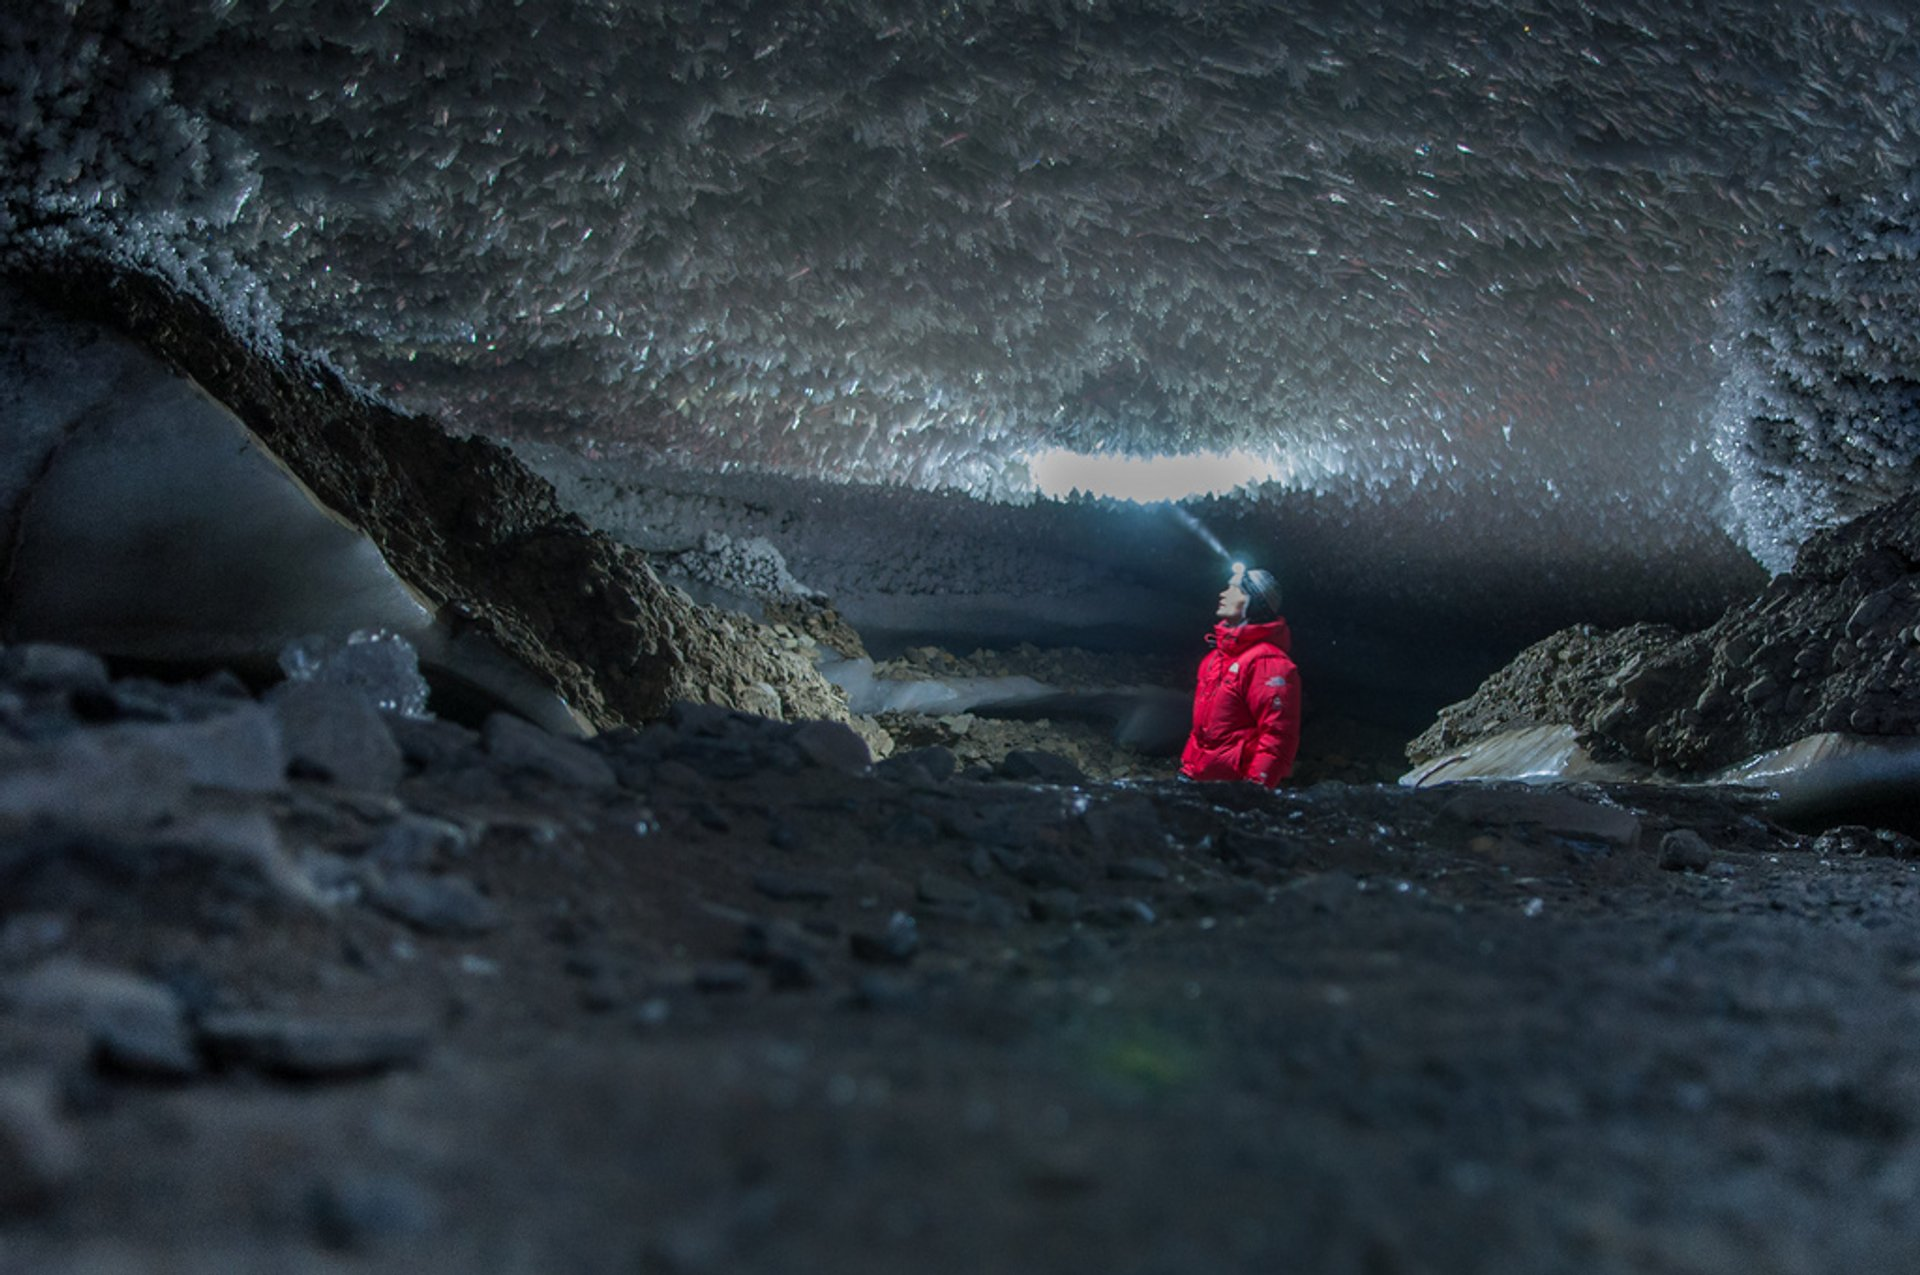 Ice Caving in Svalbard 2020 - Best Time